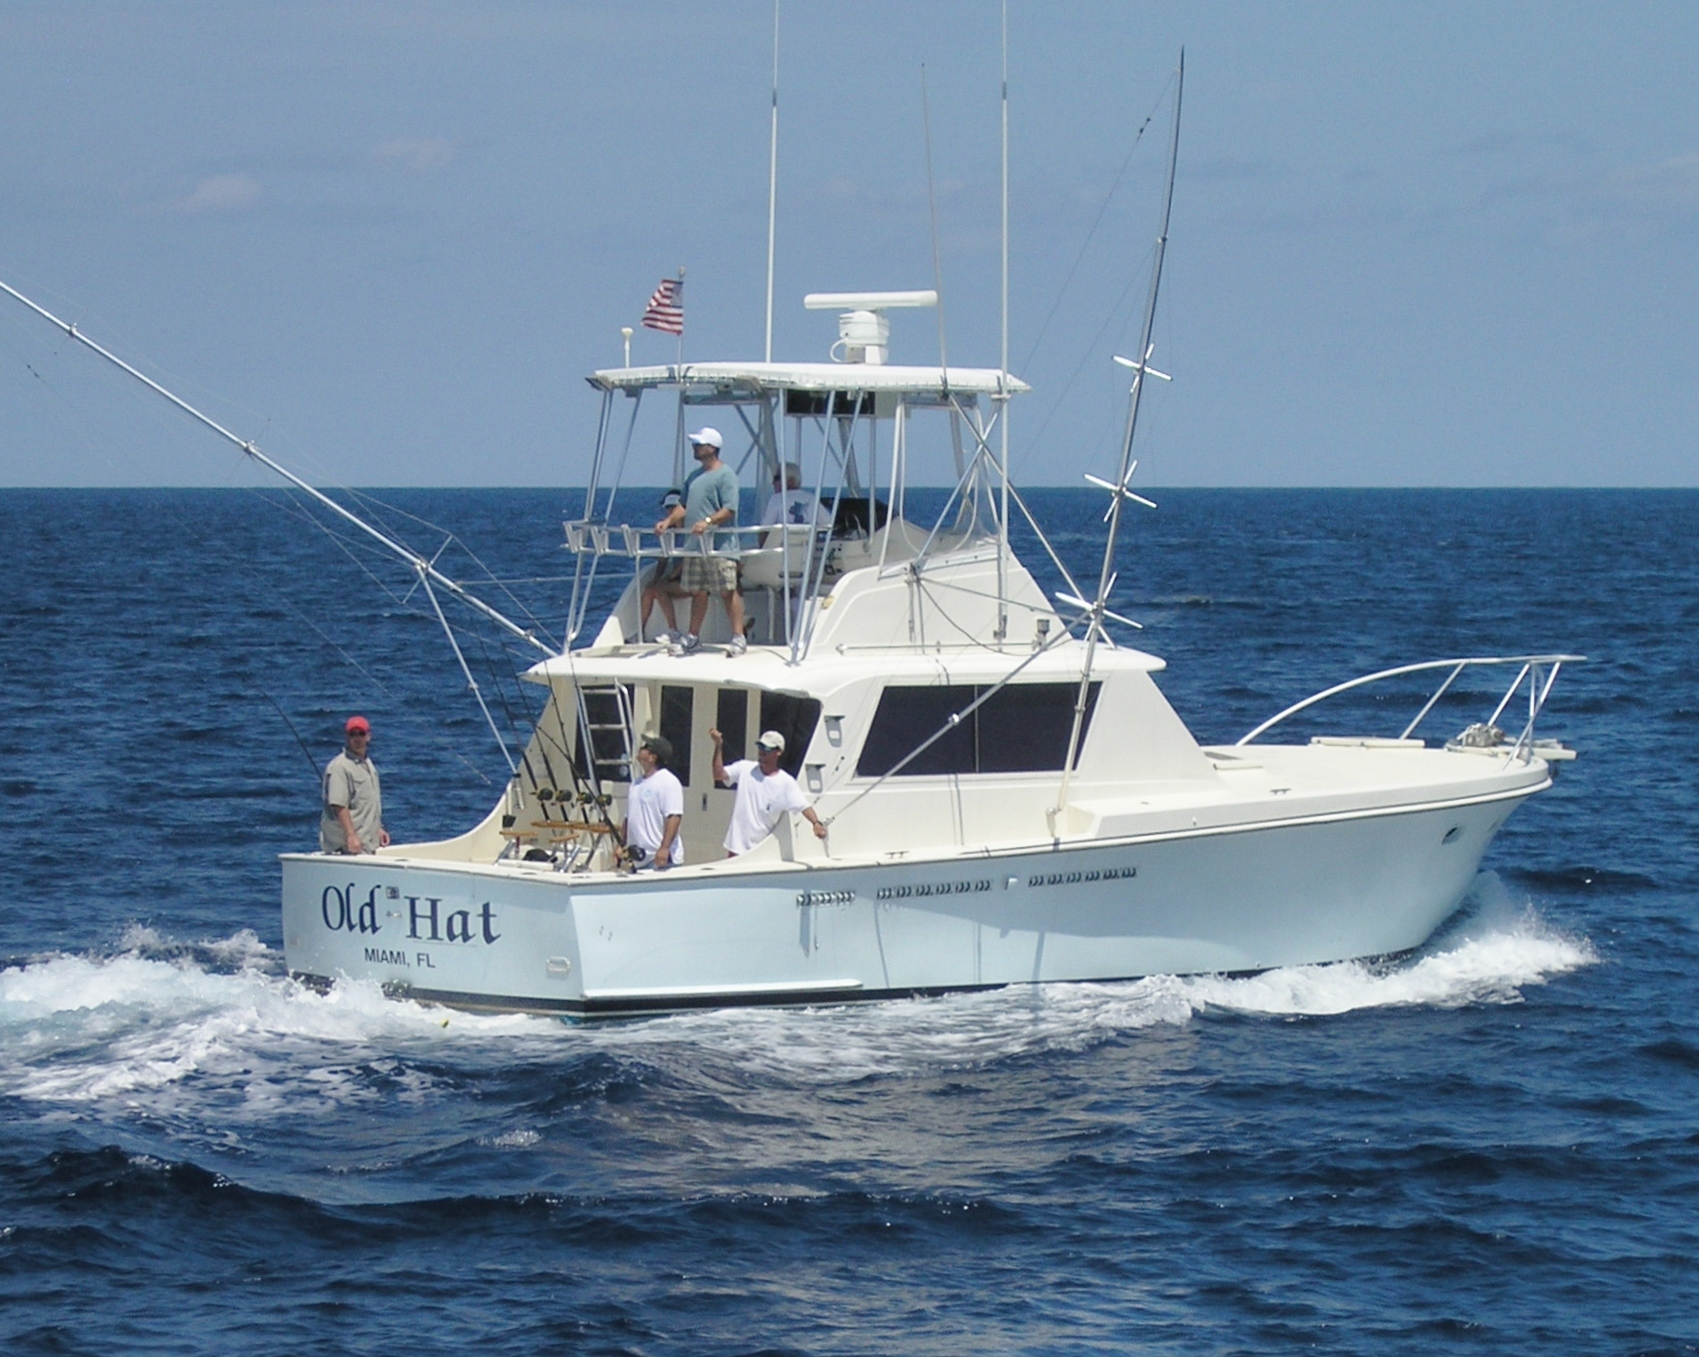 Old hat fishing charters miami beach united states for Deep sea fishing charters near me